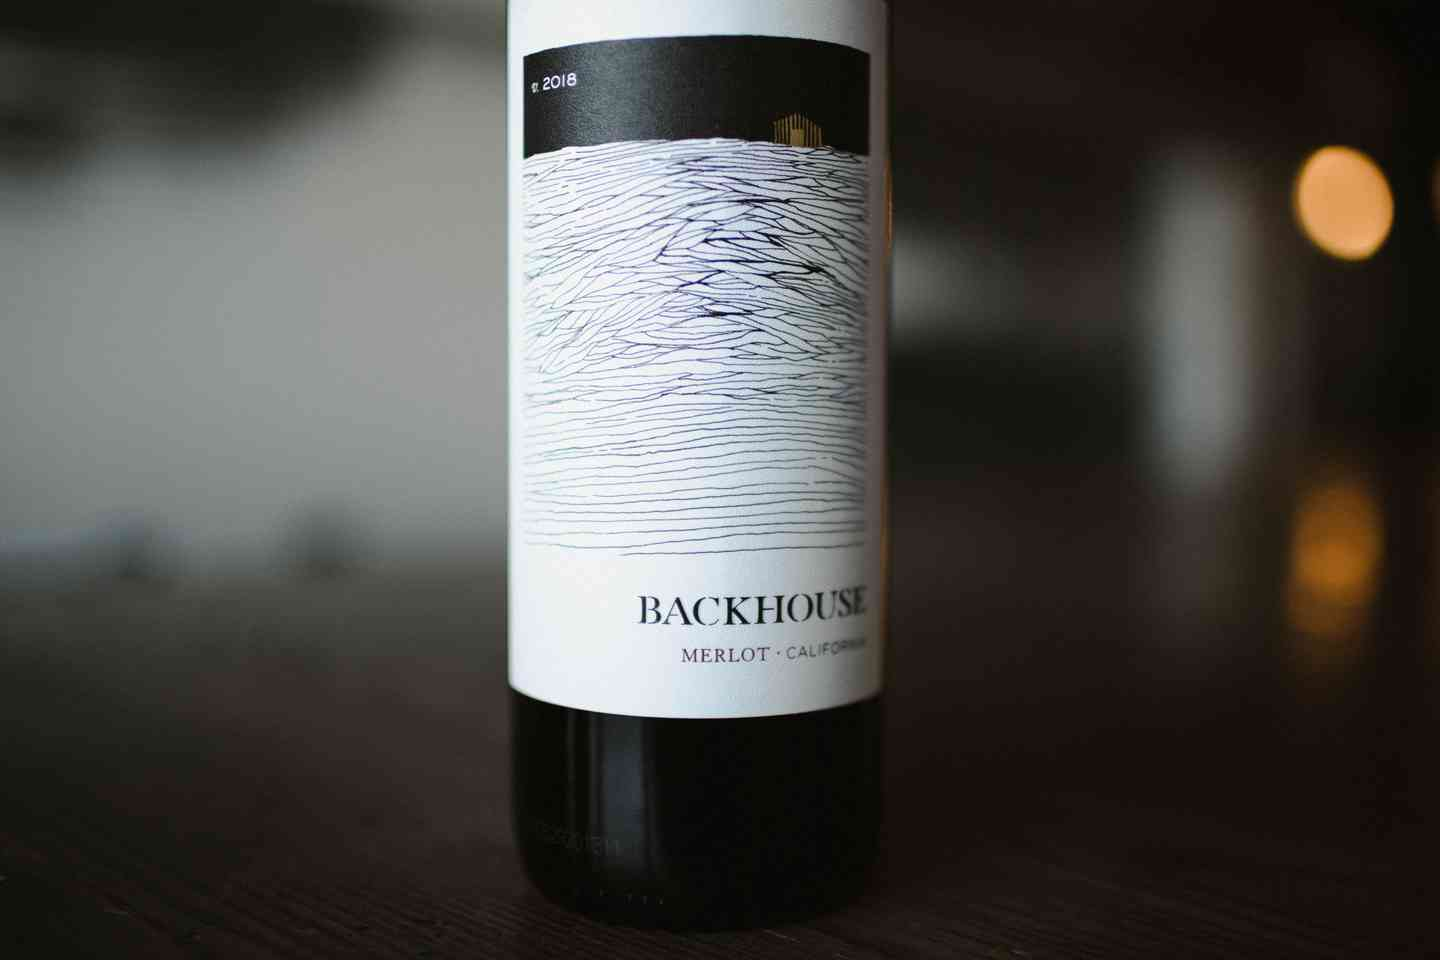 Backhouse Merlot